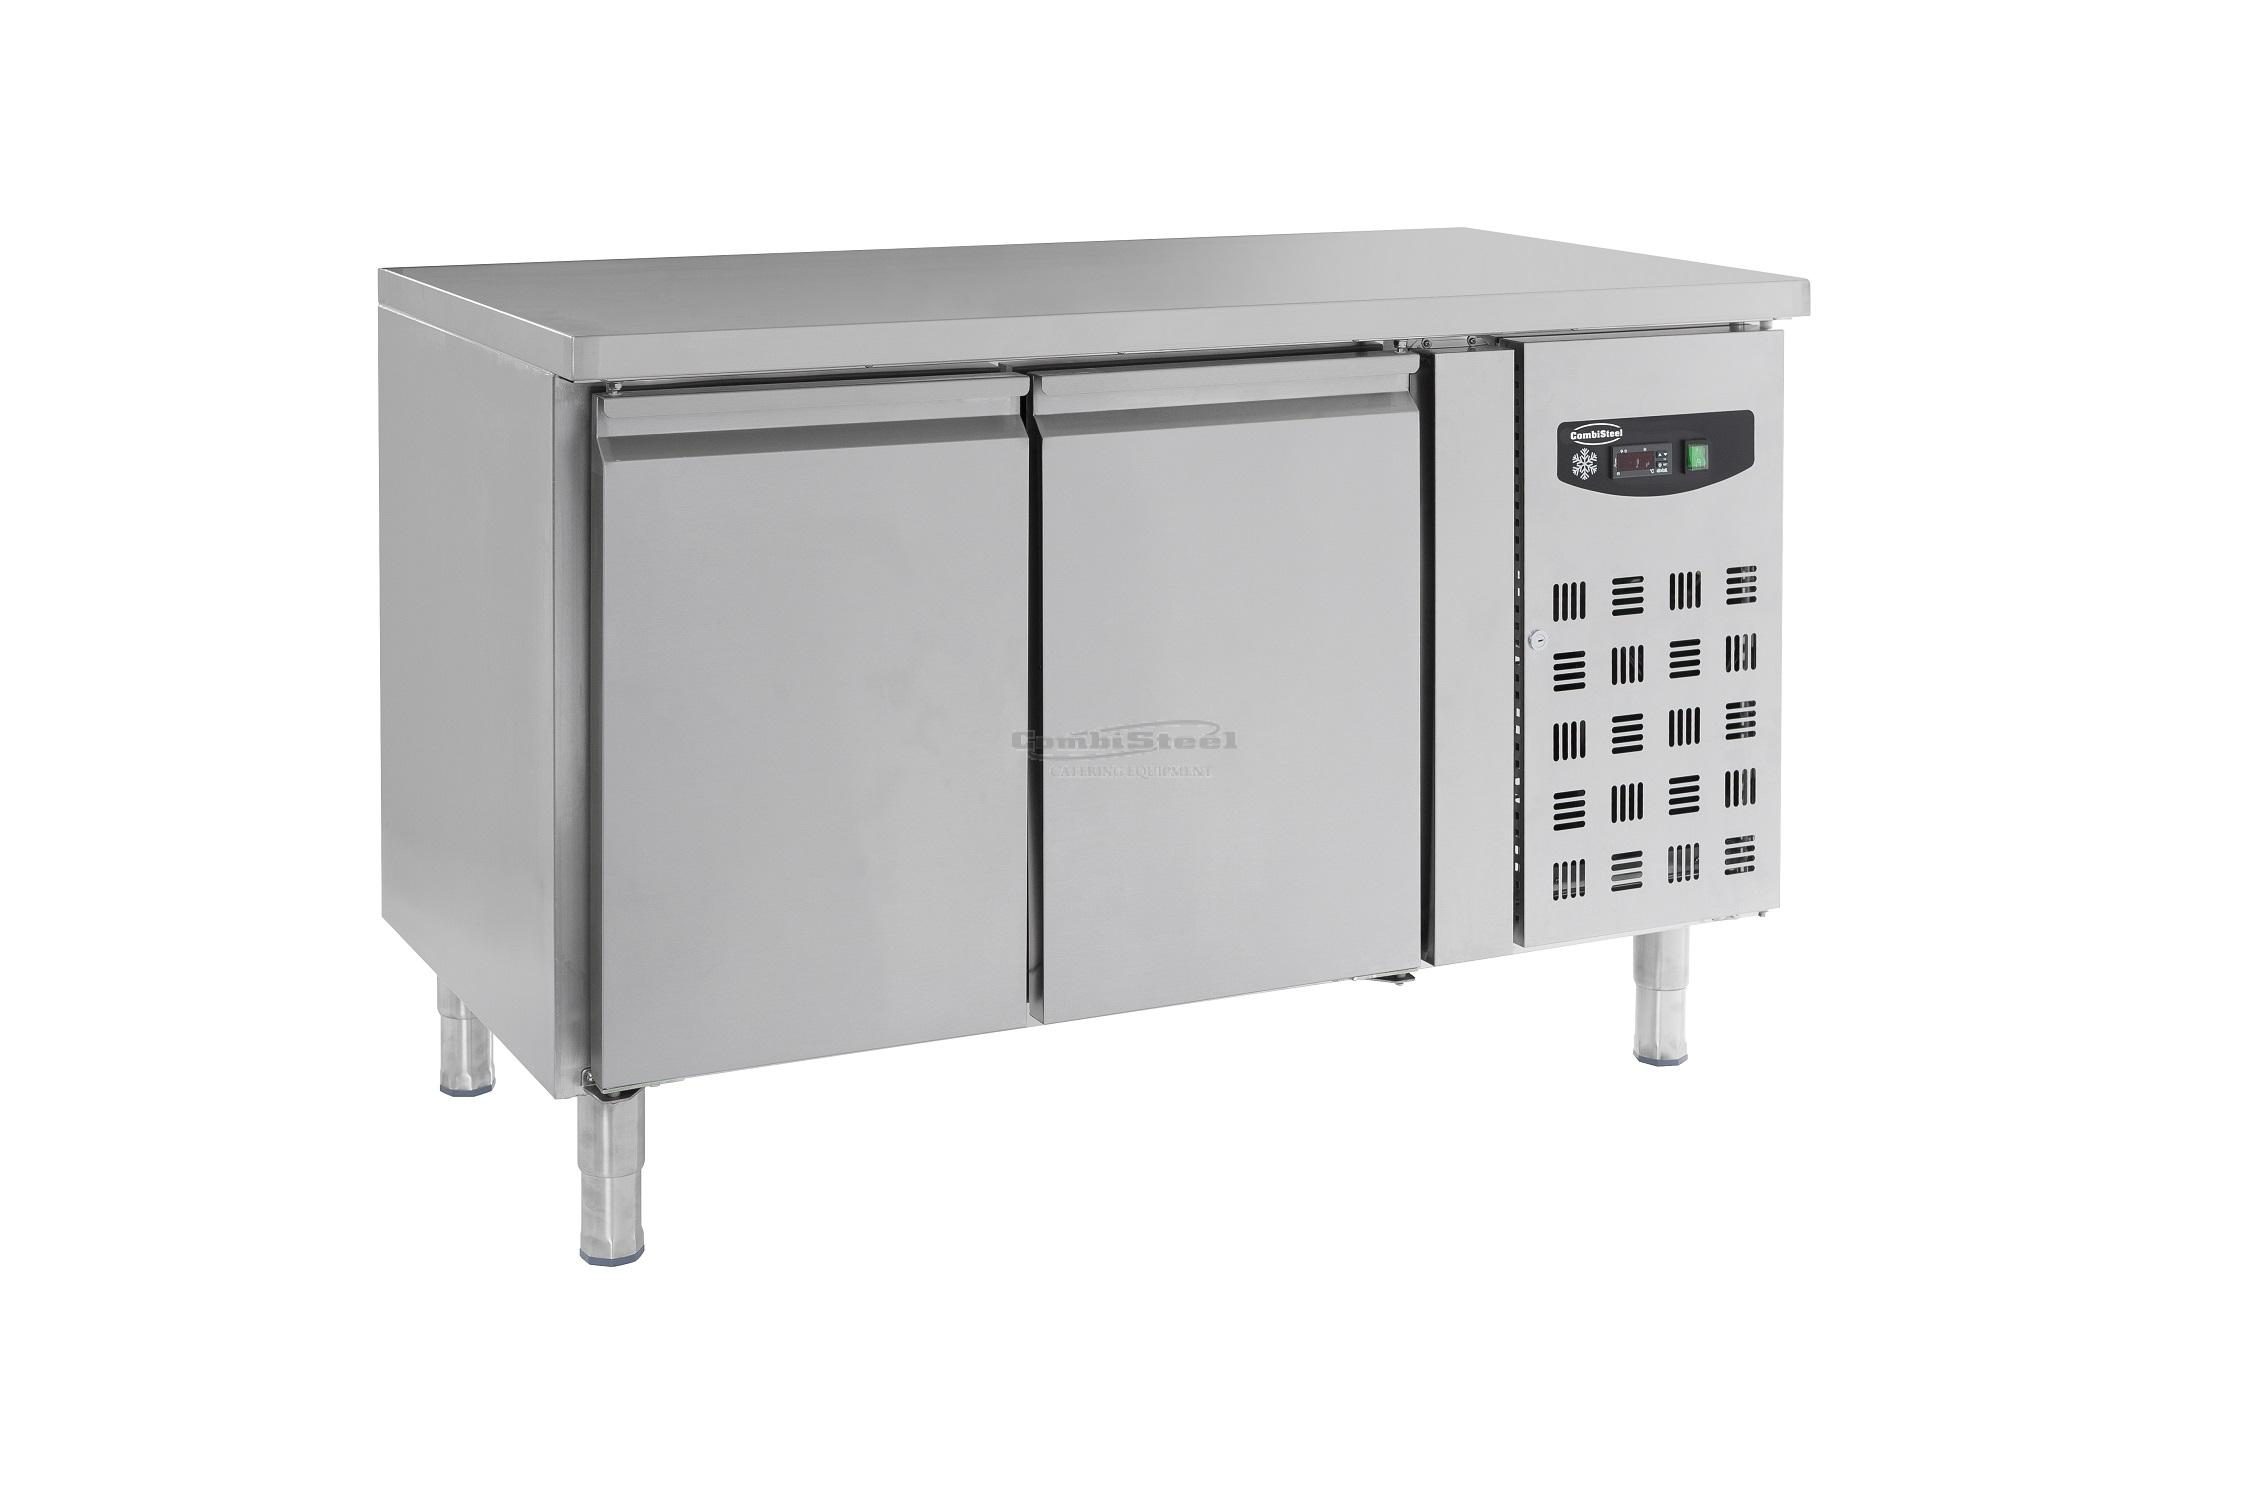 700 REFRIGERATED COUNTER 2 DOORS - 7950.0080 | Spiteri Catering